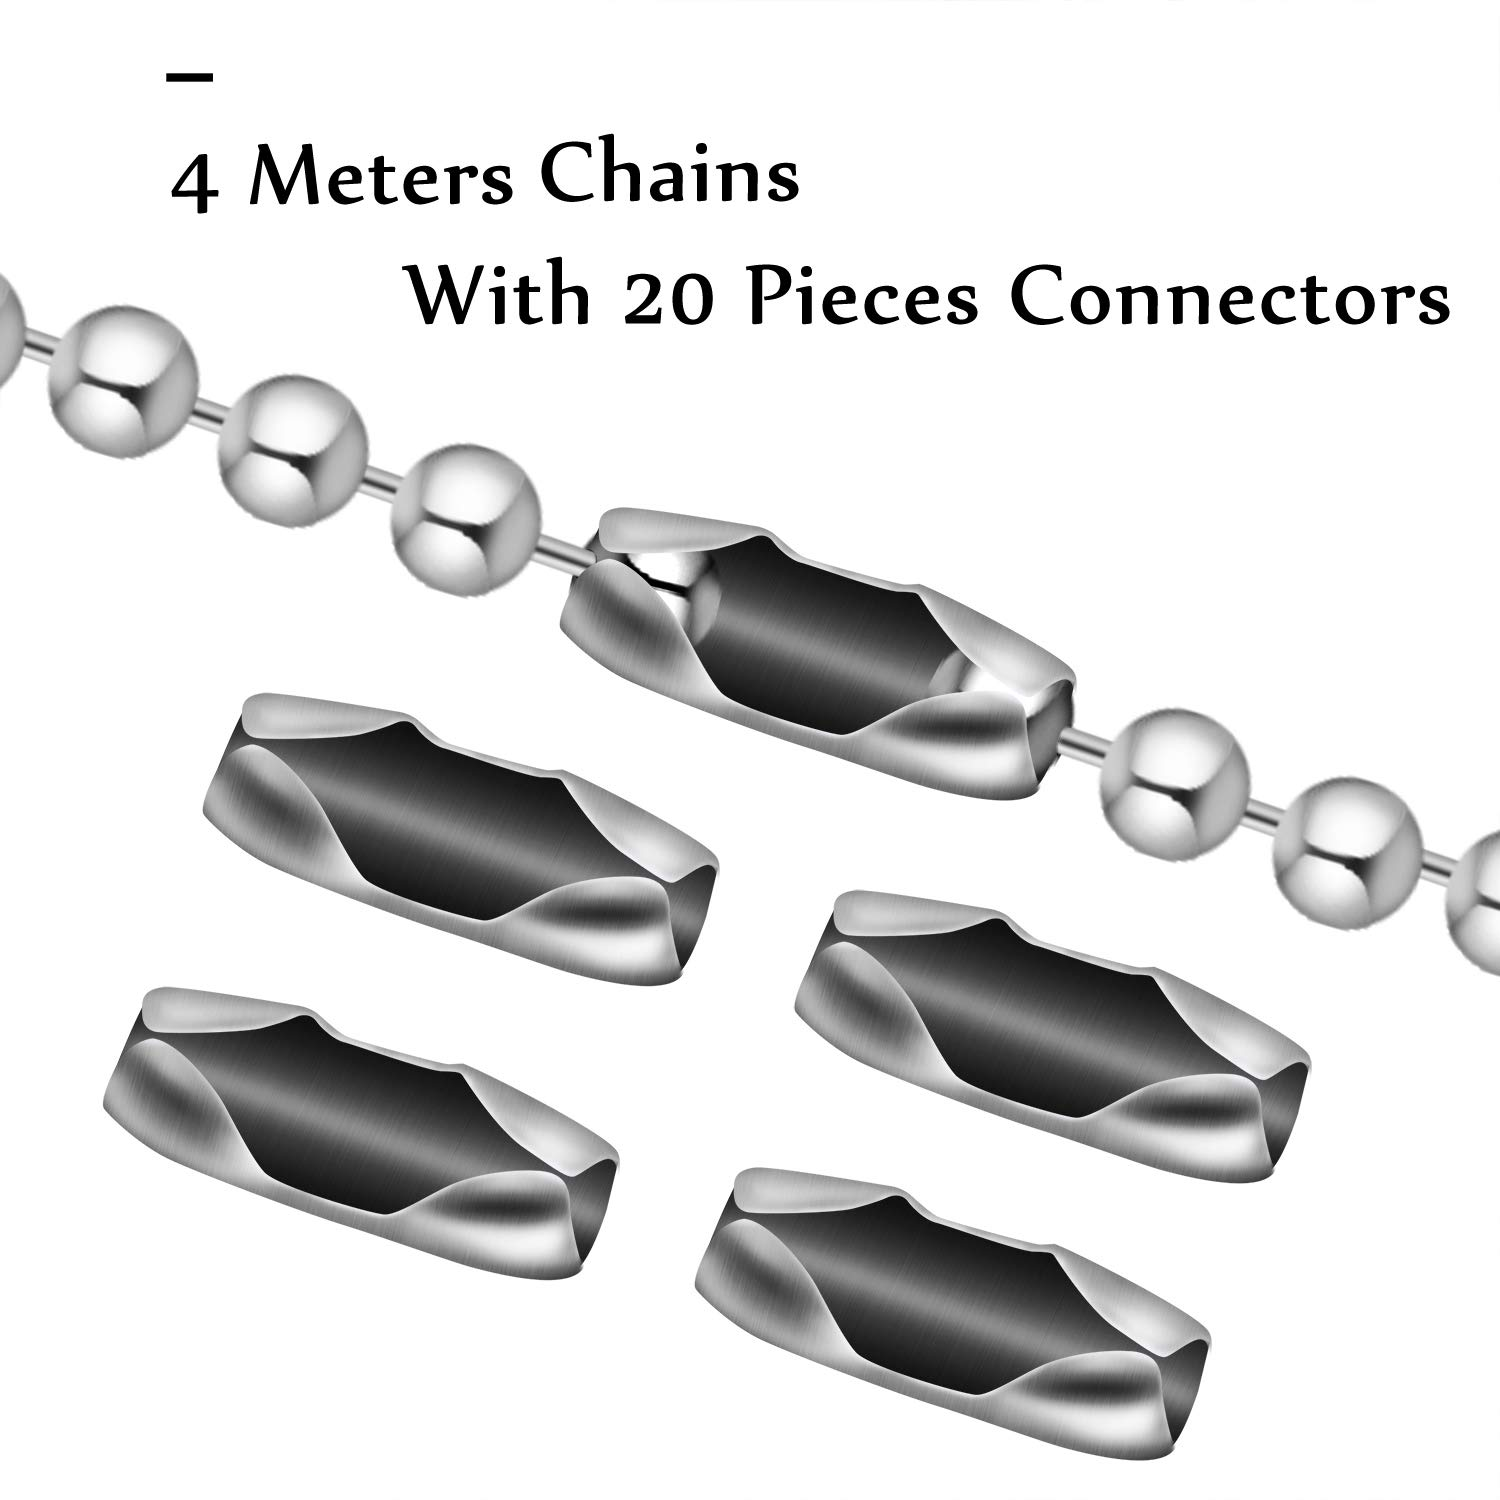 BronaGrand 1pcs 4.5mm Beaded Pull Chain Extension with Connector,4m Beaded Roller Chain with 20 Matching Connectors,Silver